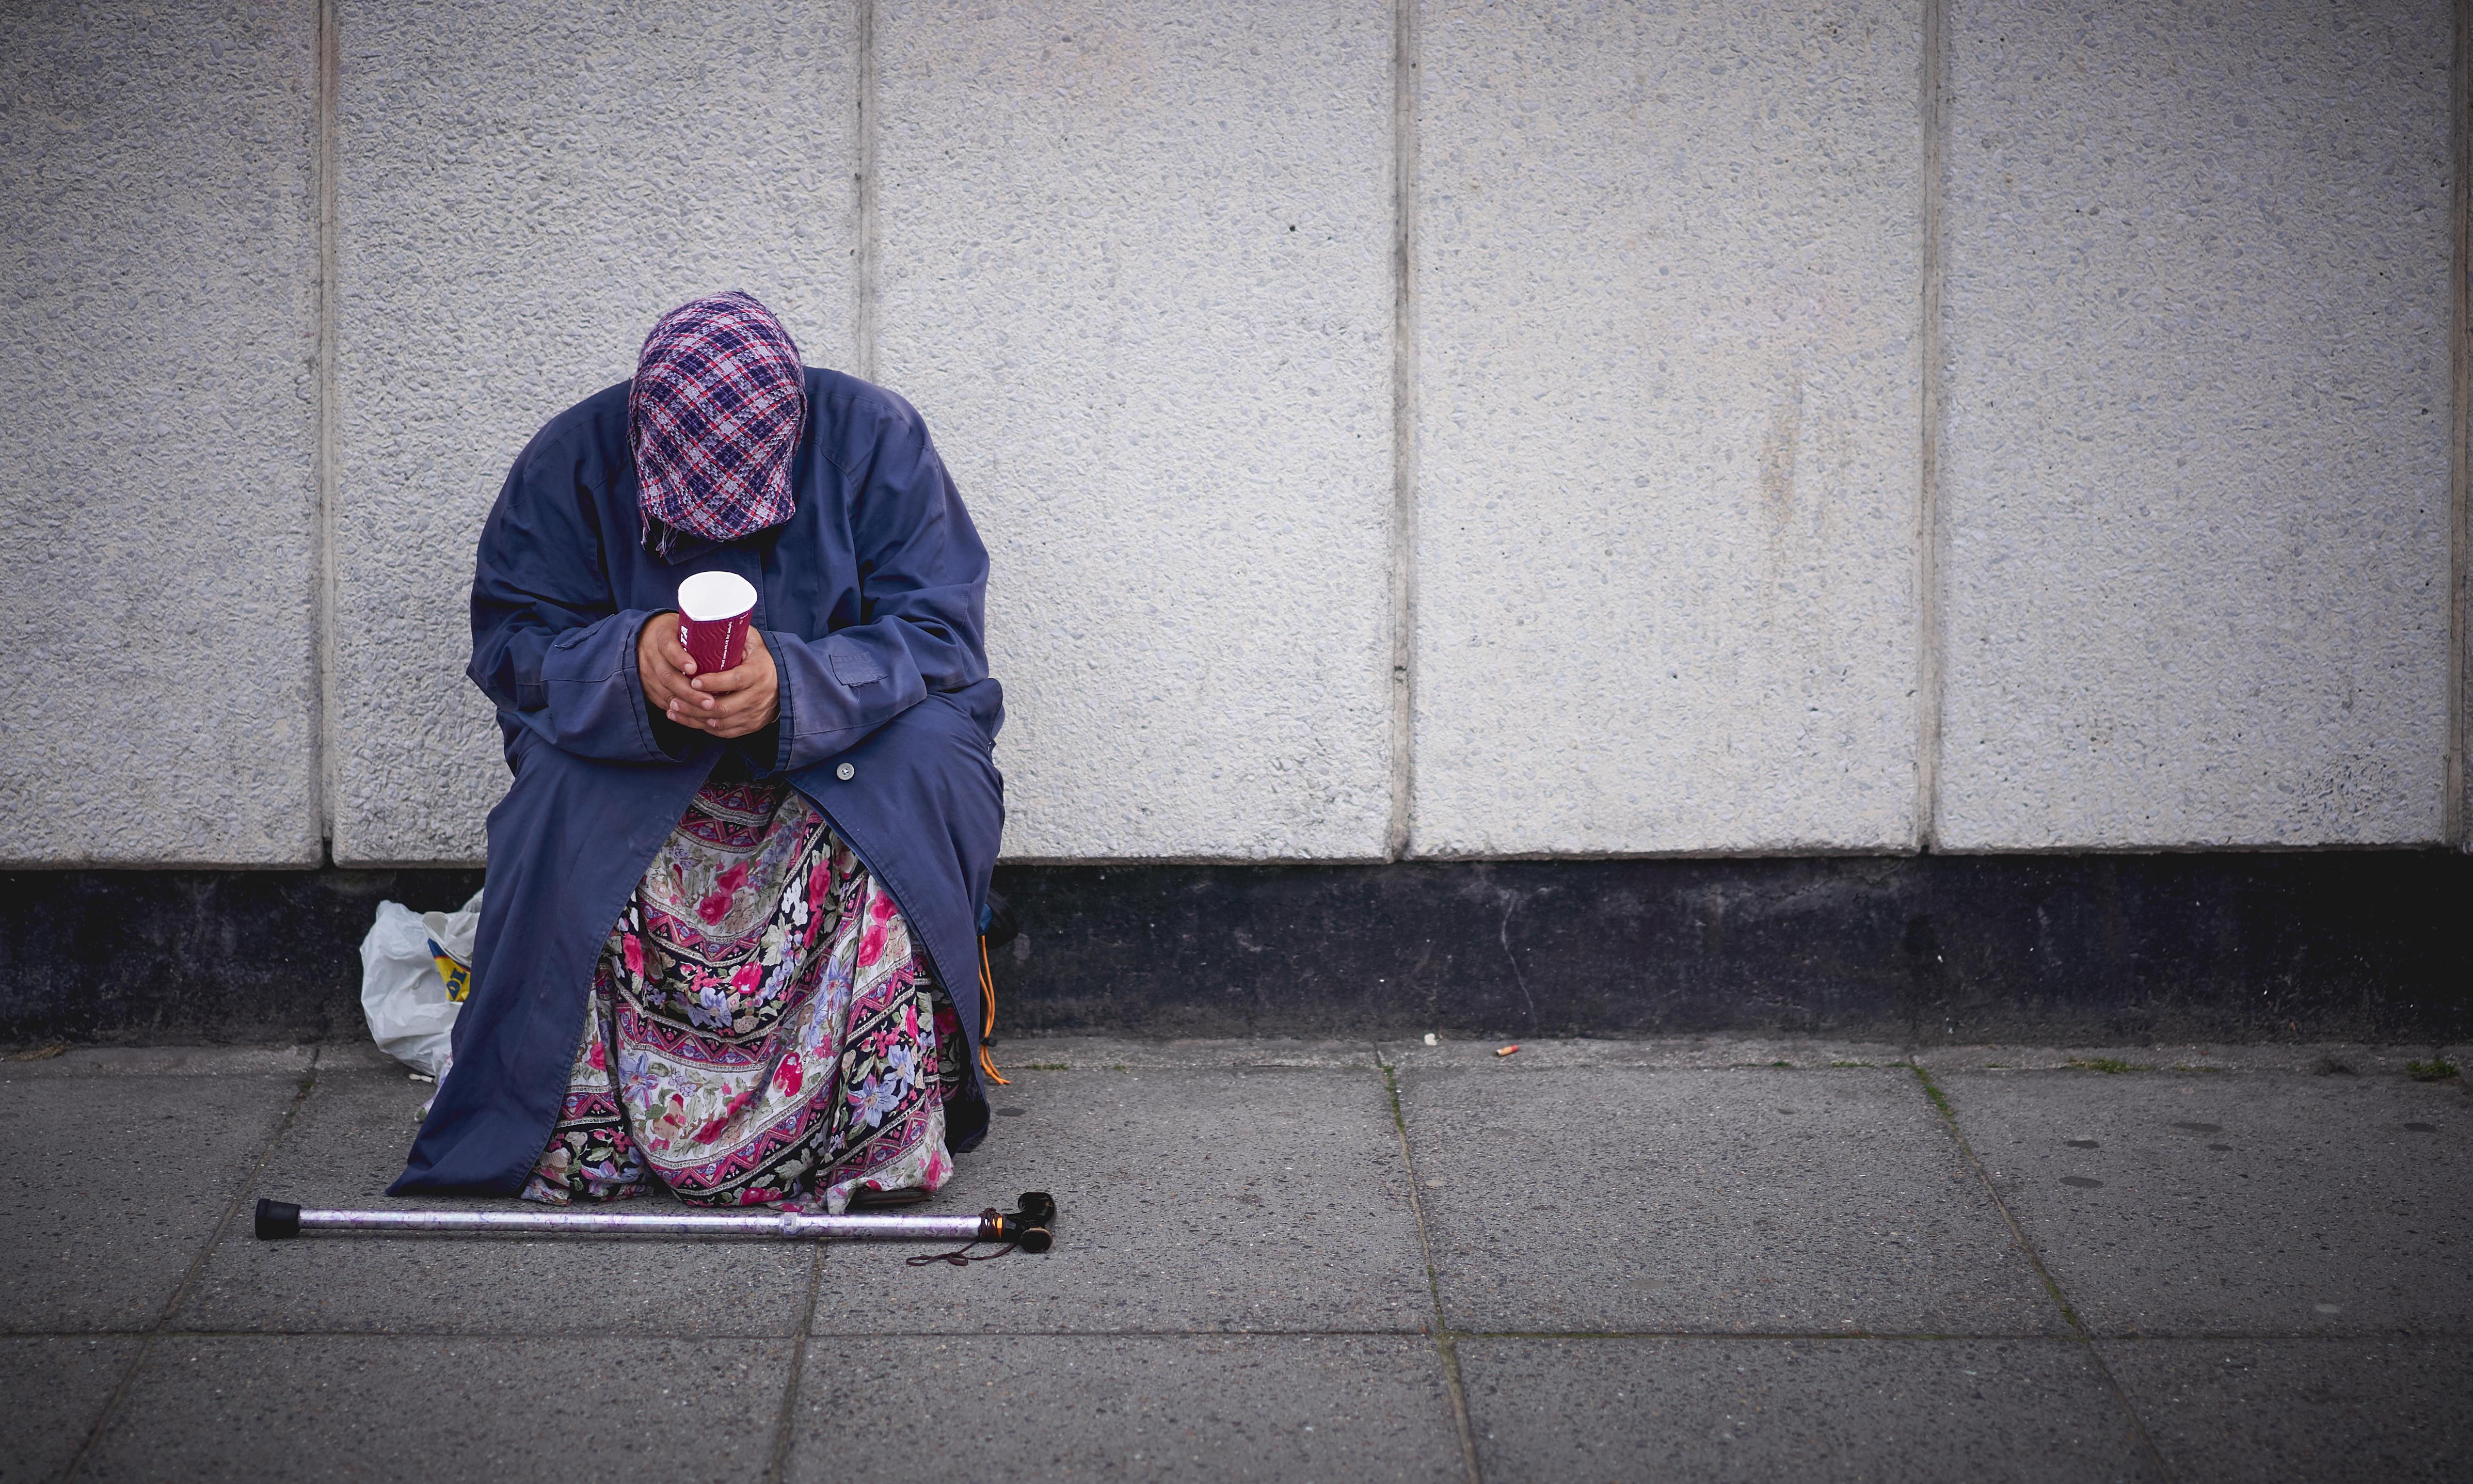 Half of all homeless people may have had traumatic brain injury